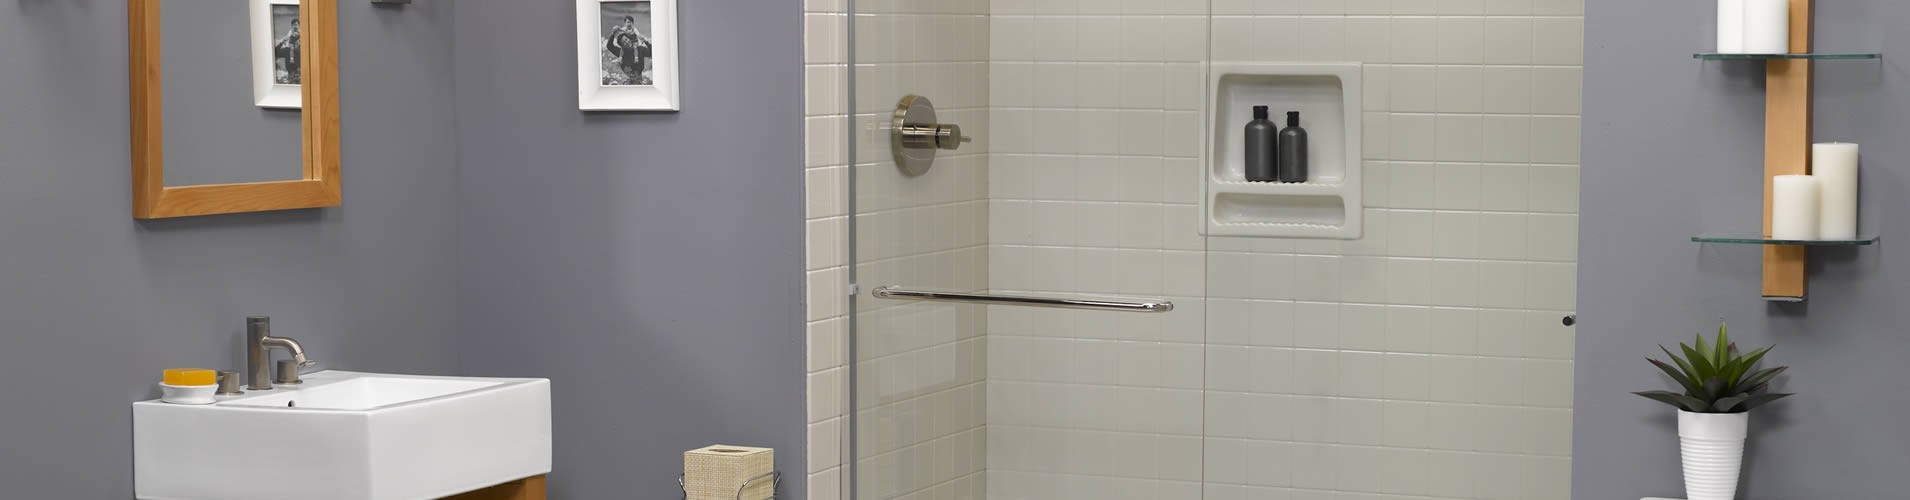 Shower Door Installations - Atlanta, Georgia